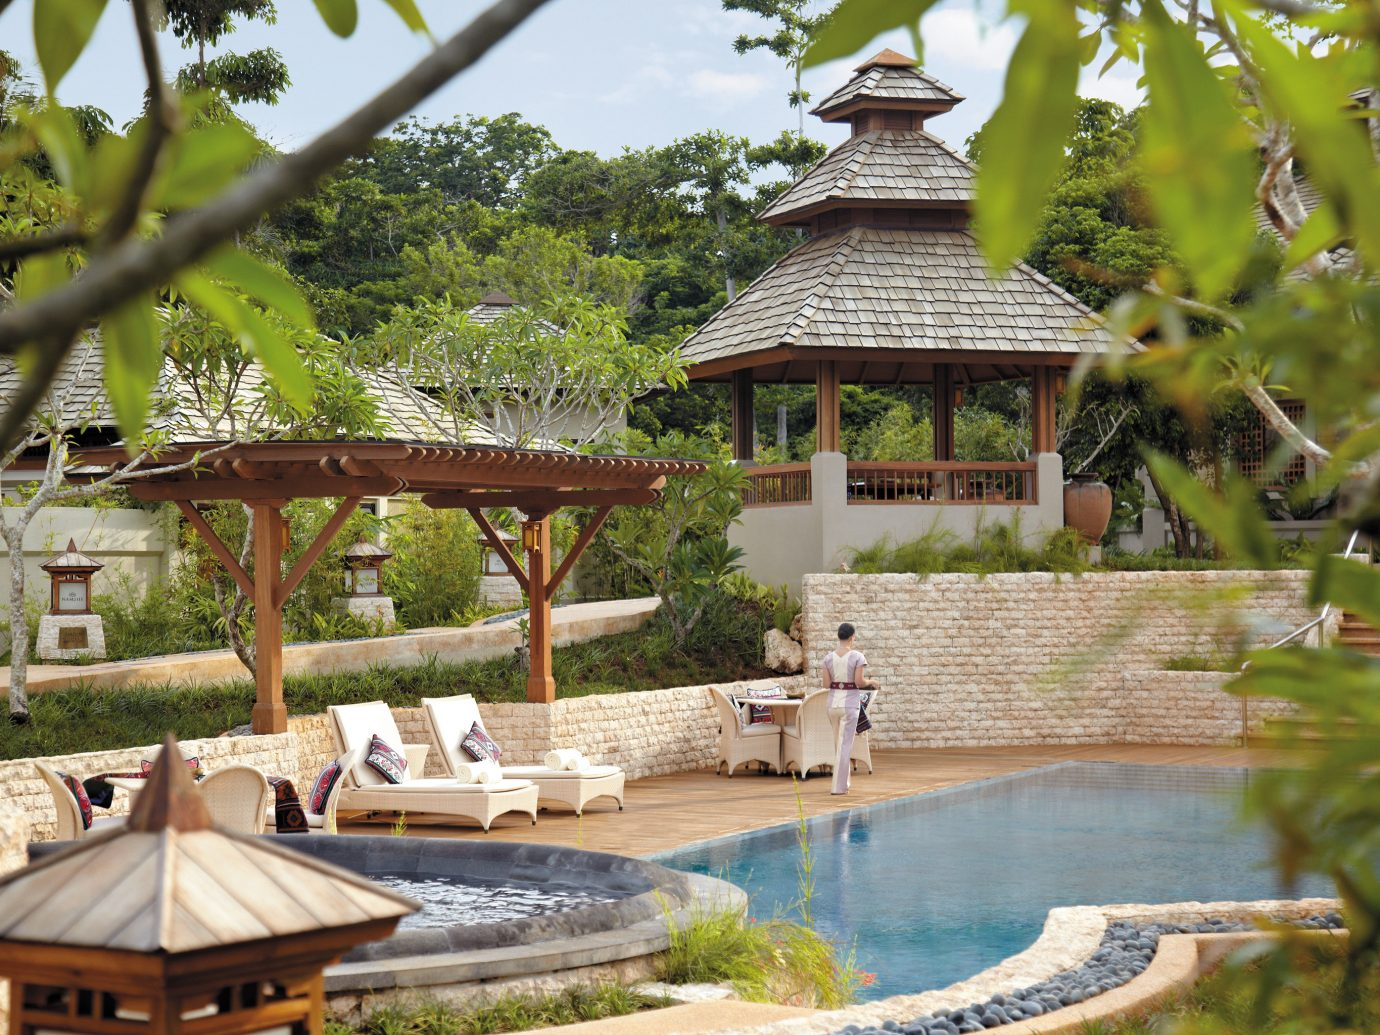 Architecture Buildings Design Family Hotels Play Pool Resort tree outdoor building swimming pool estate backyard Garden outdoor structure gazebo Villa Jungle